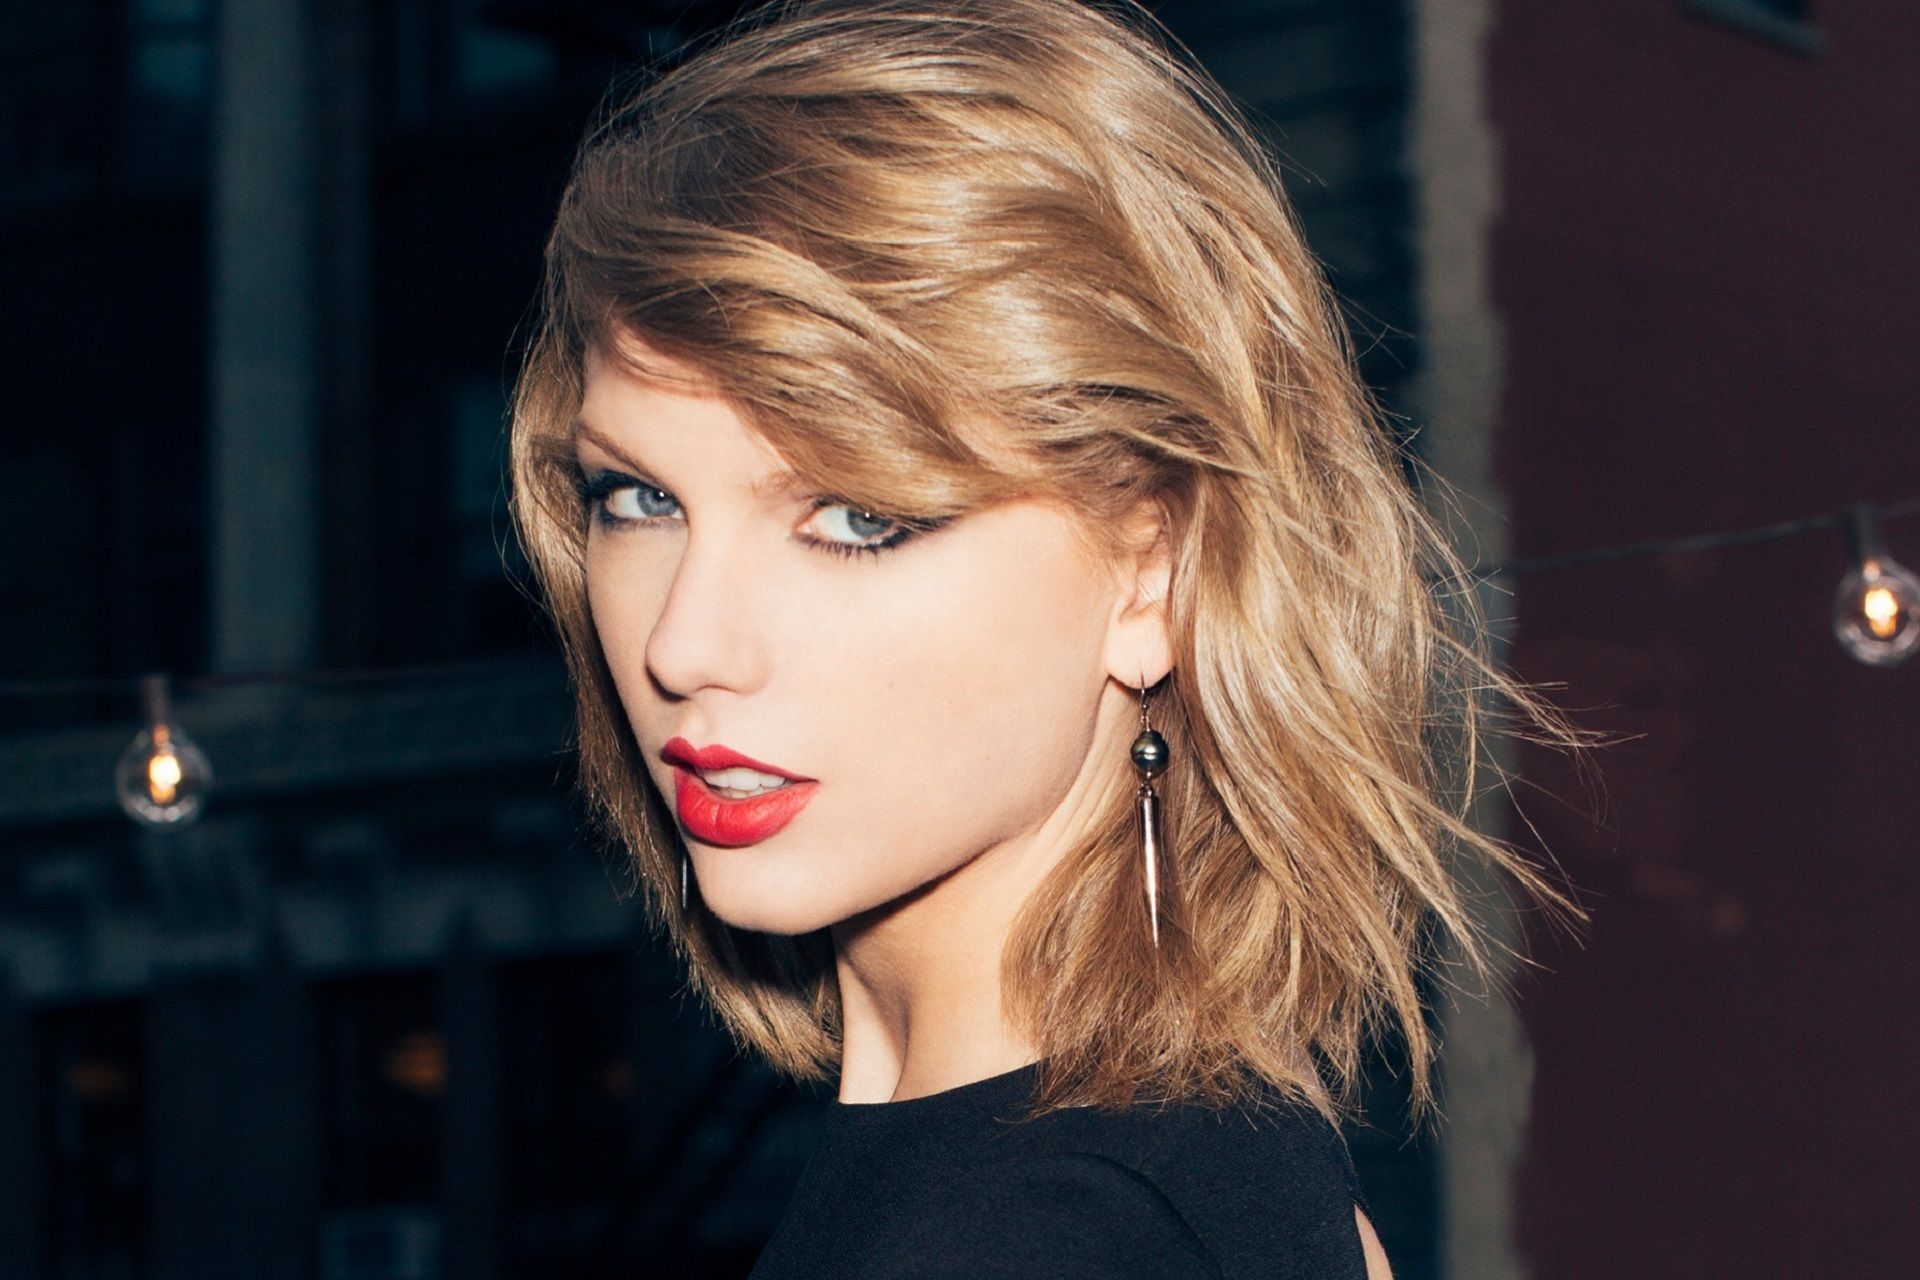 Taylor Swift Wallpapers Top Free Taylor Swift Backgrounds Wallpaperaccess